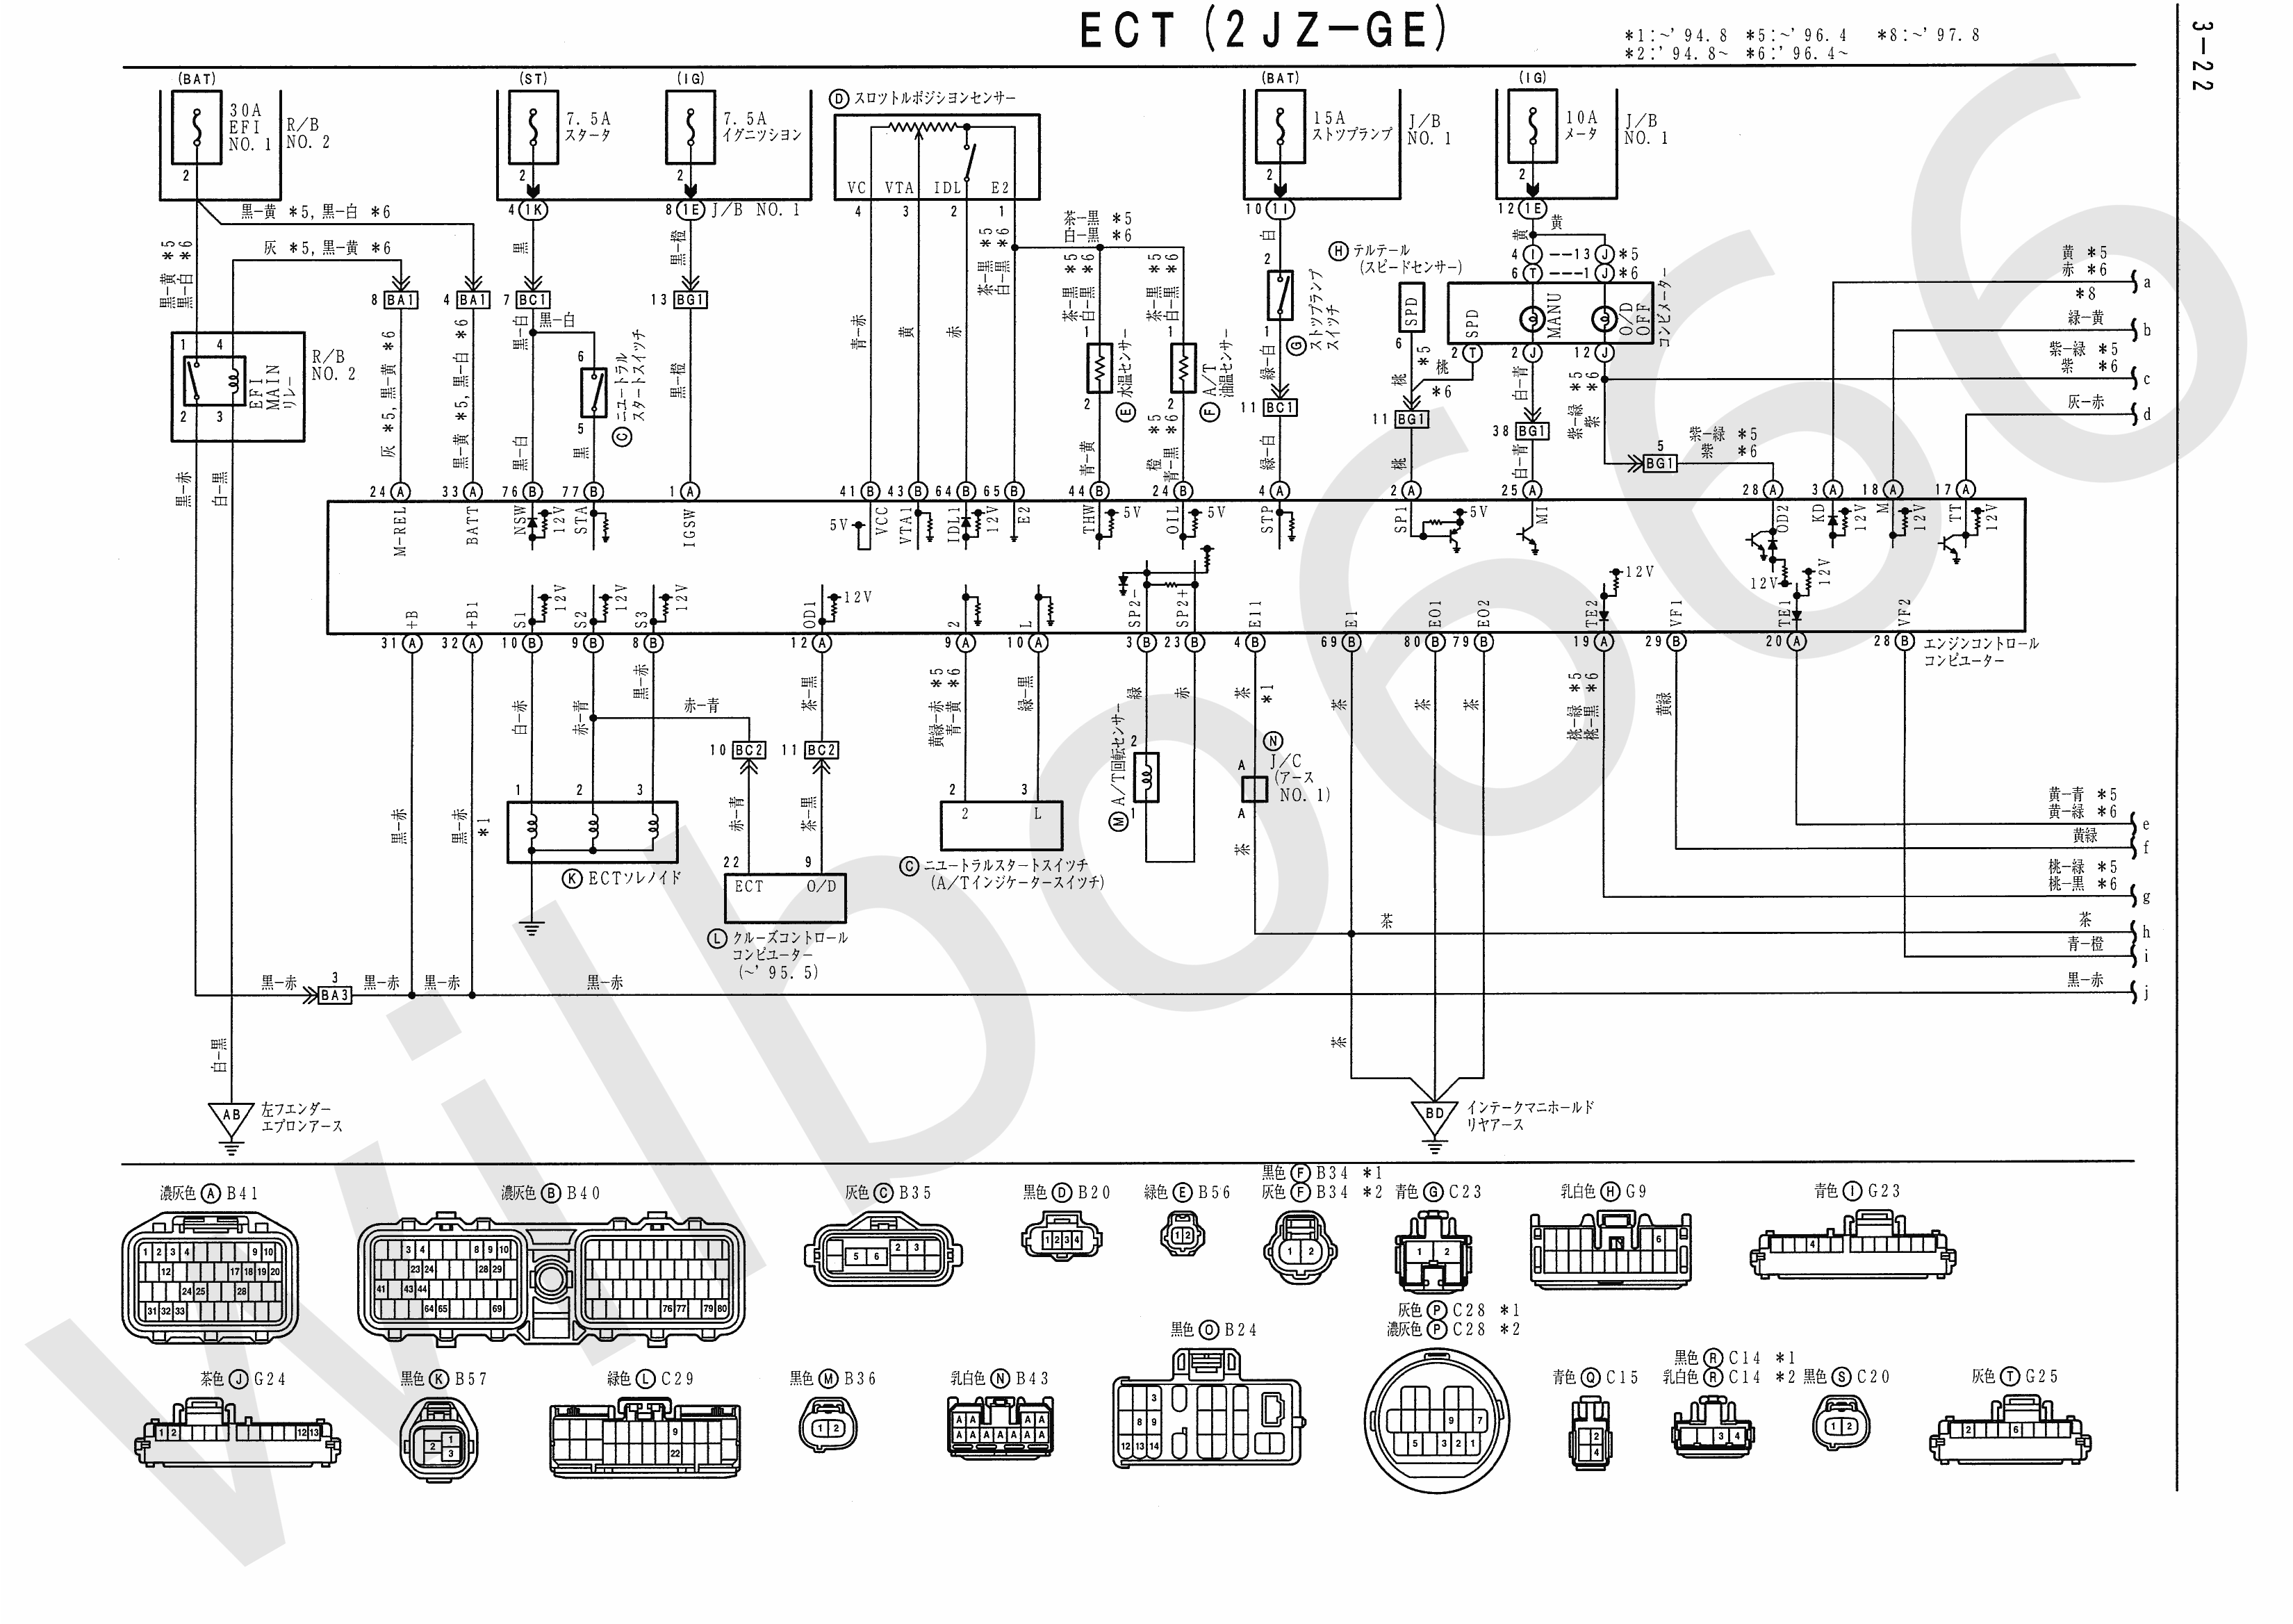 JZA80 Electrical Wiring Diagram 6742505 3 22 wilbo666 2jz ge jza80 supra engine wiring ge wiring diagrams at webbmarketing.co